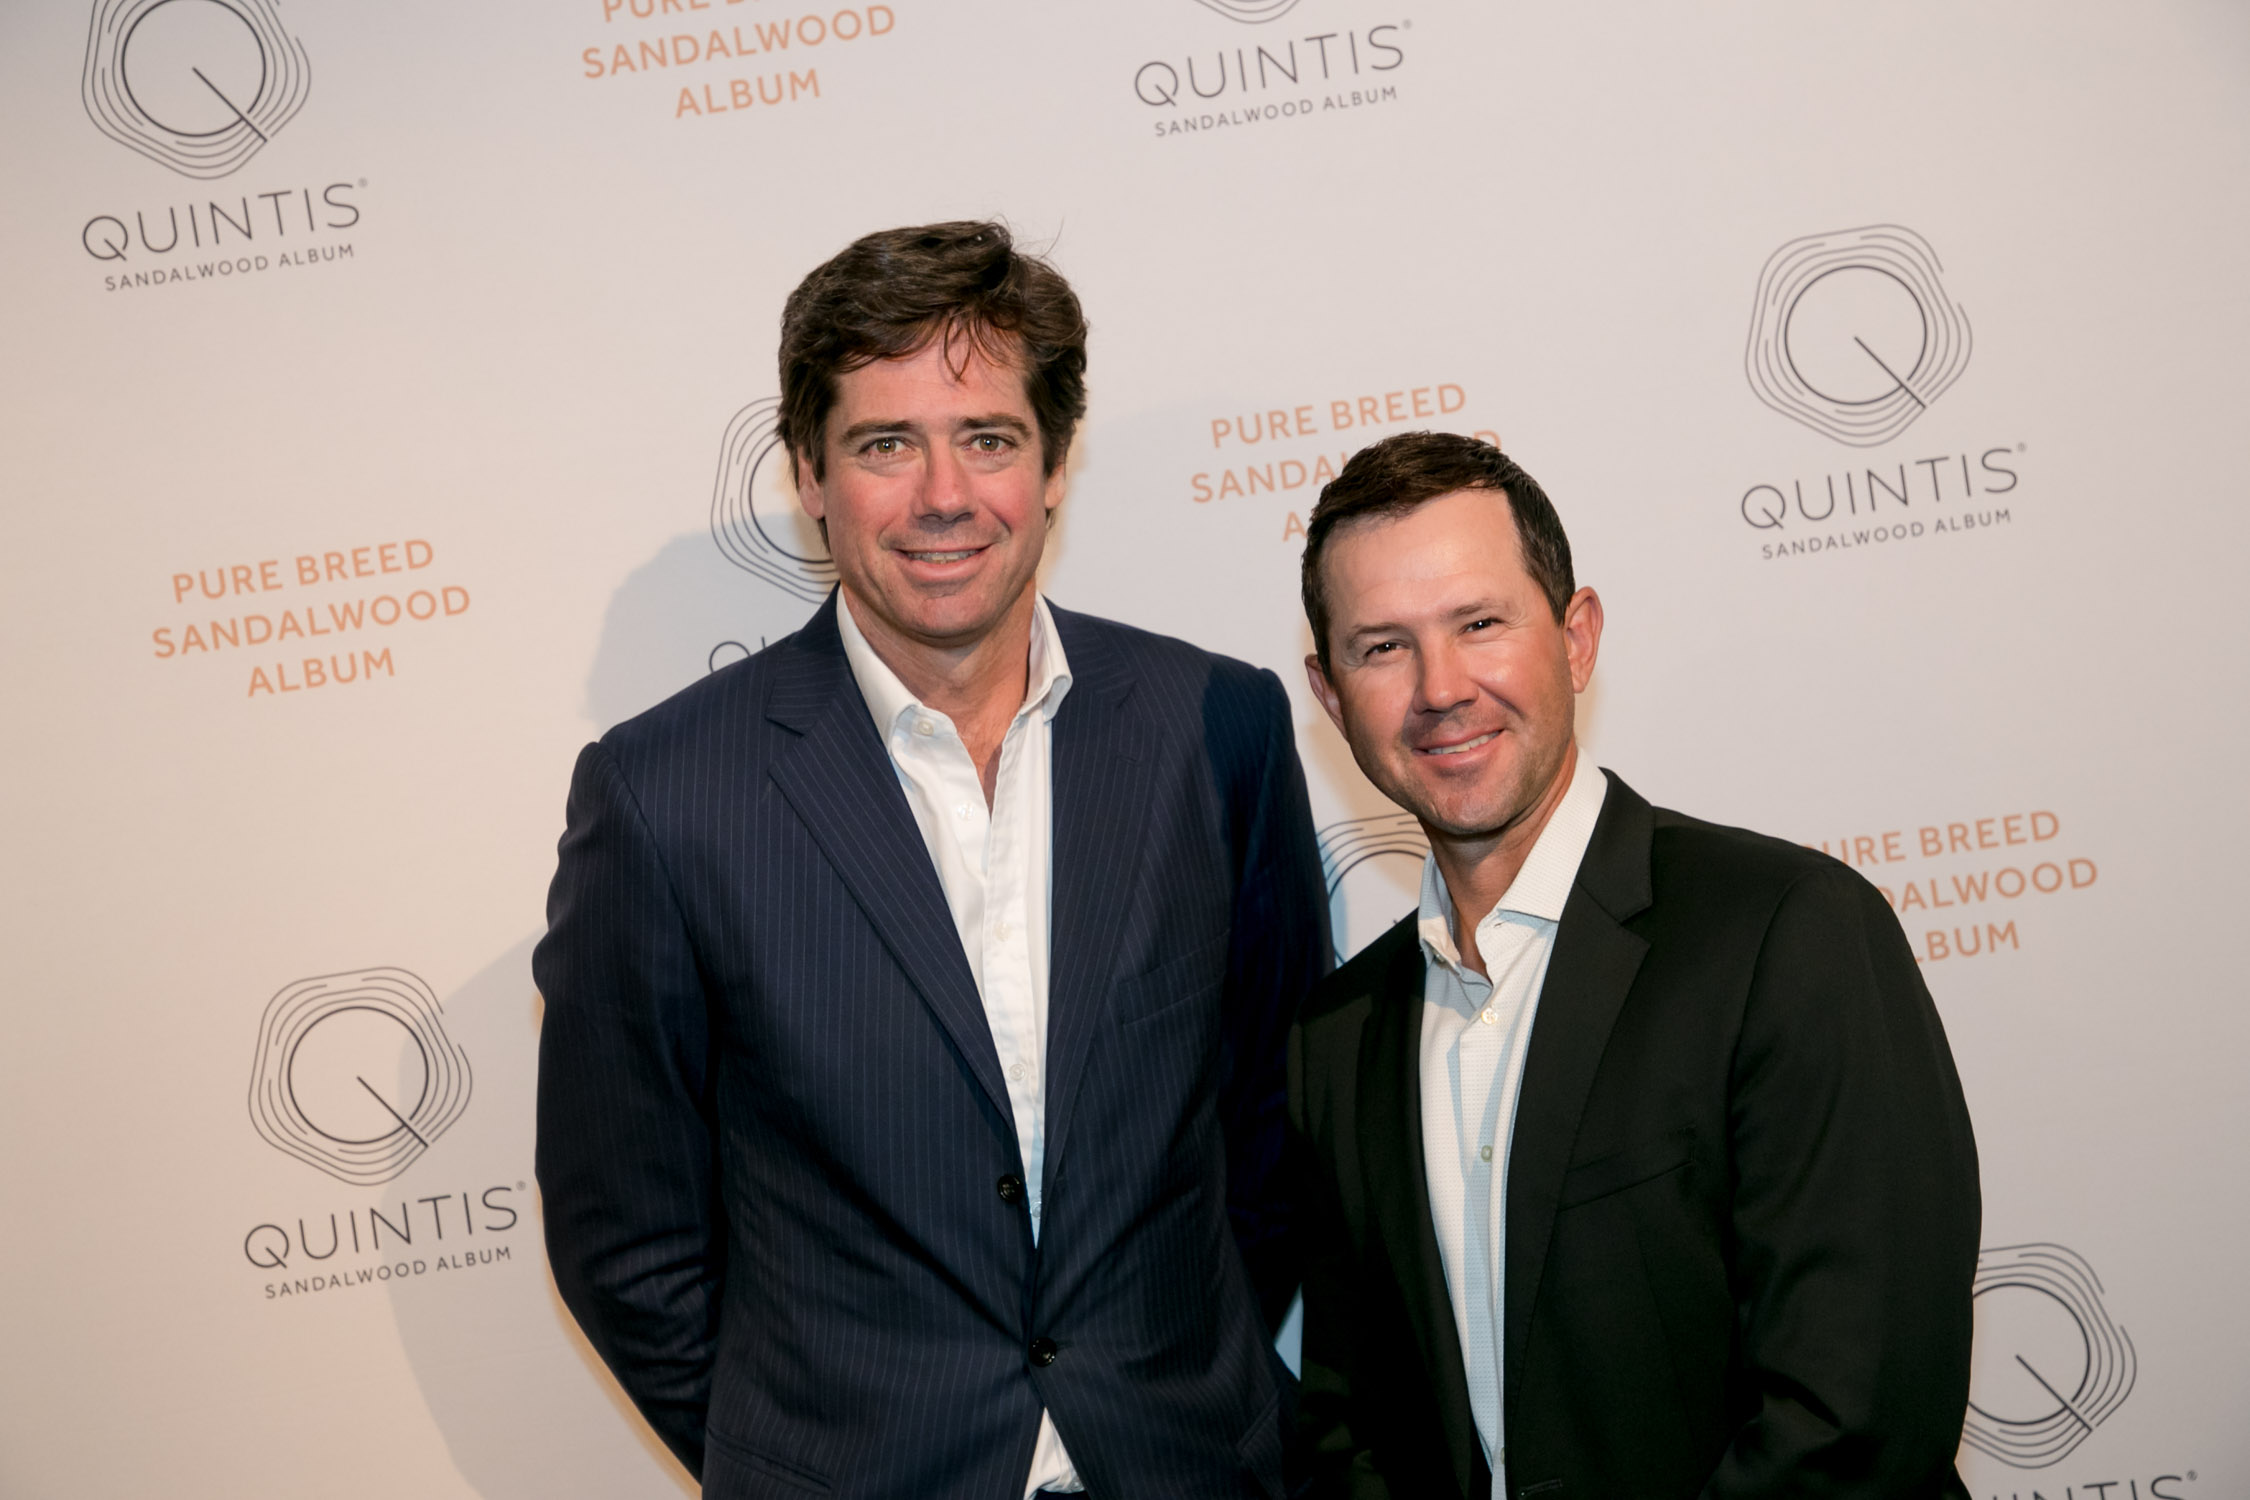 Gillon McLachlan and Ricky Ponting at Quintis launch event